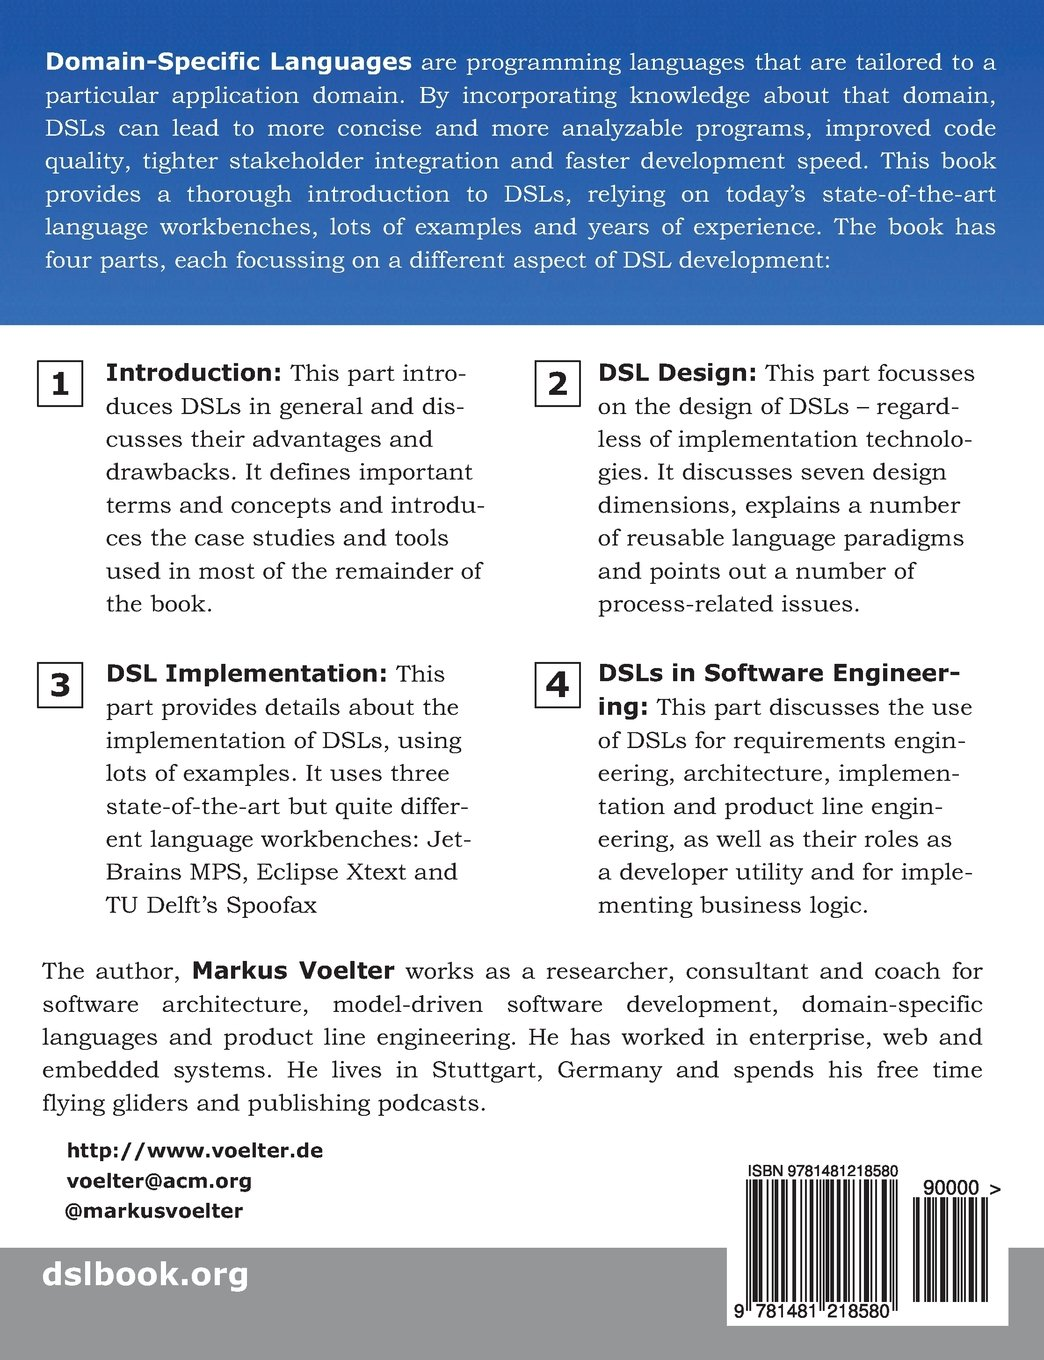 Dsl Engineering Designing Implementing And Using Domain Specific Languages Voelter Markus 9781481218580 Amazon Com Books